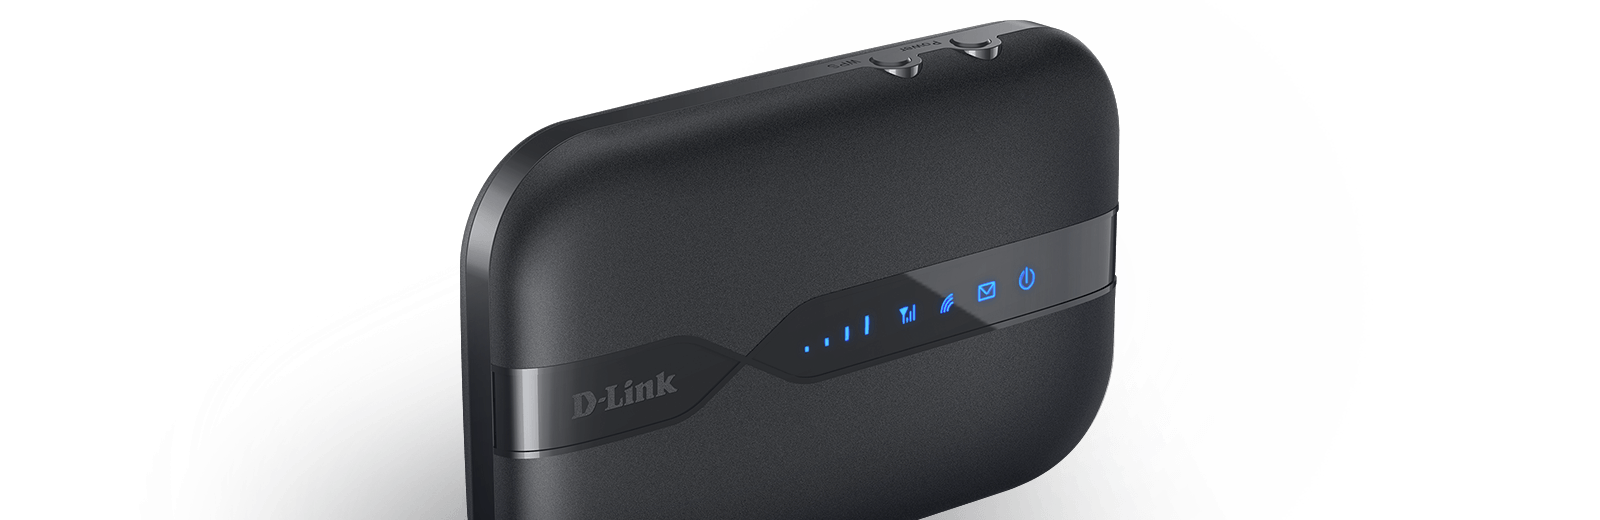 DWR-932 4G LTE Mobile WiFi Hotspot 150 Mbps